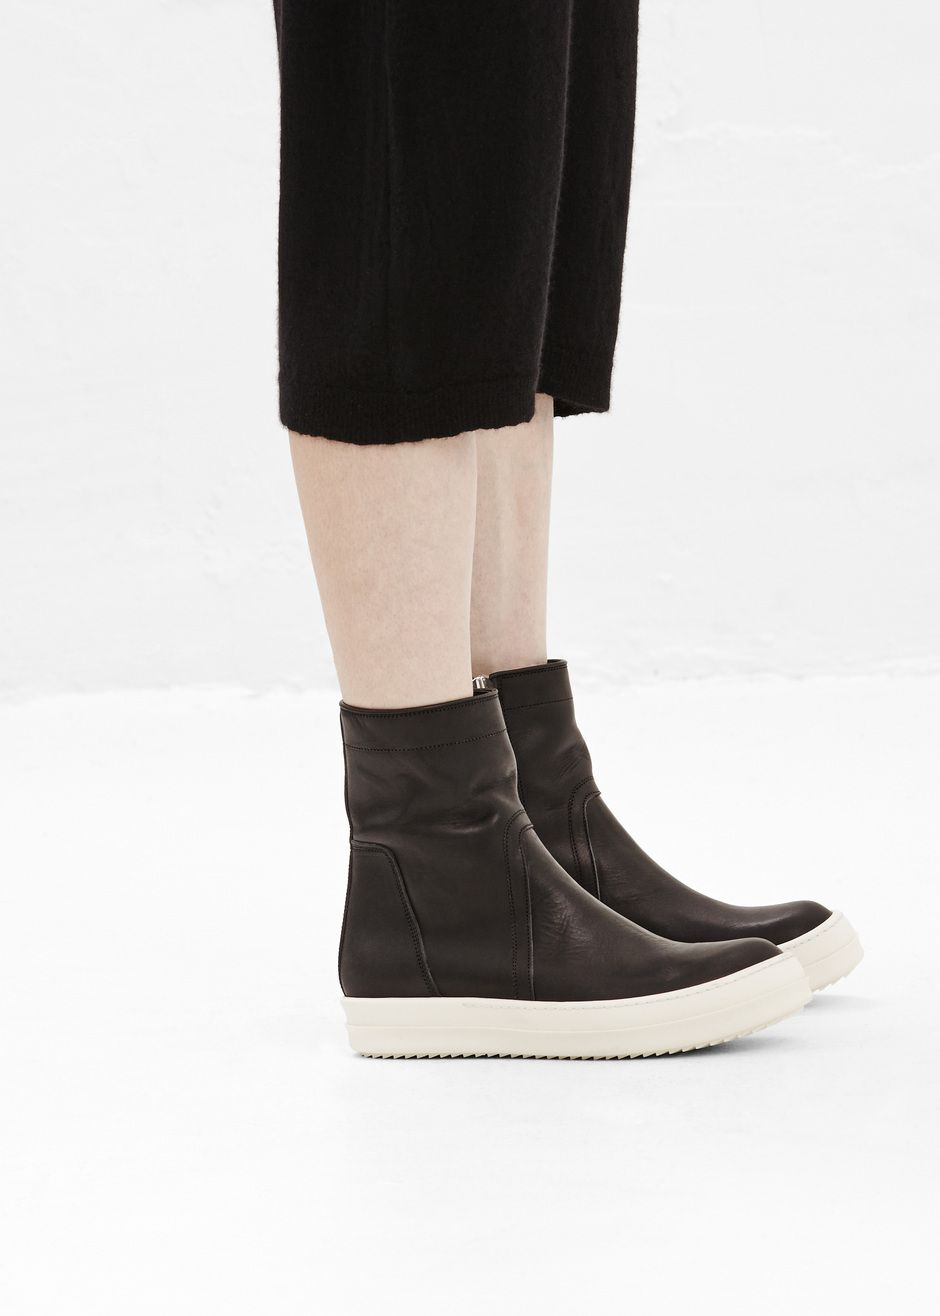 Rick OwensLeather Ankle Boots